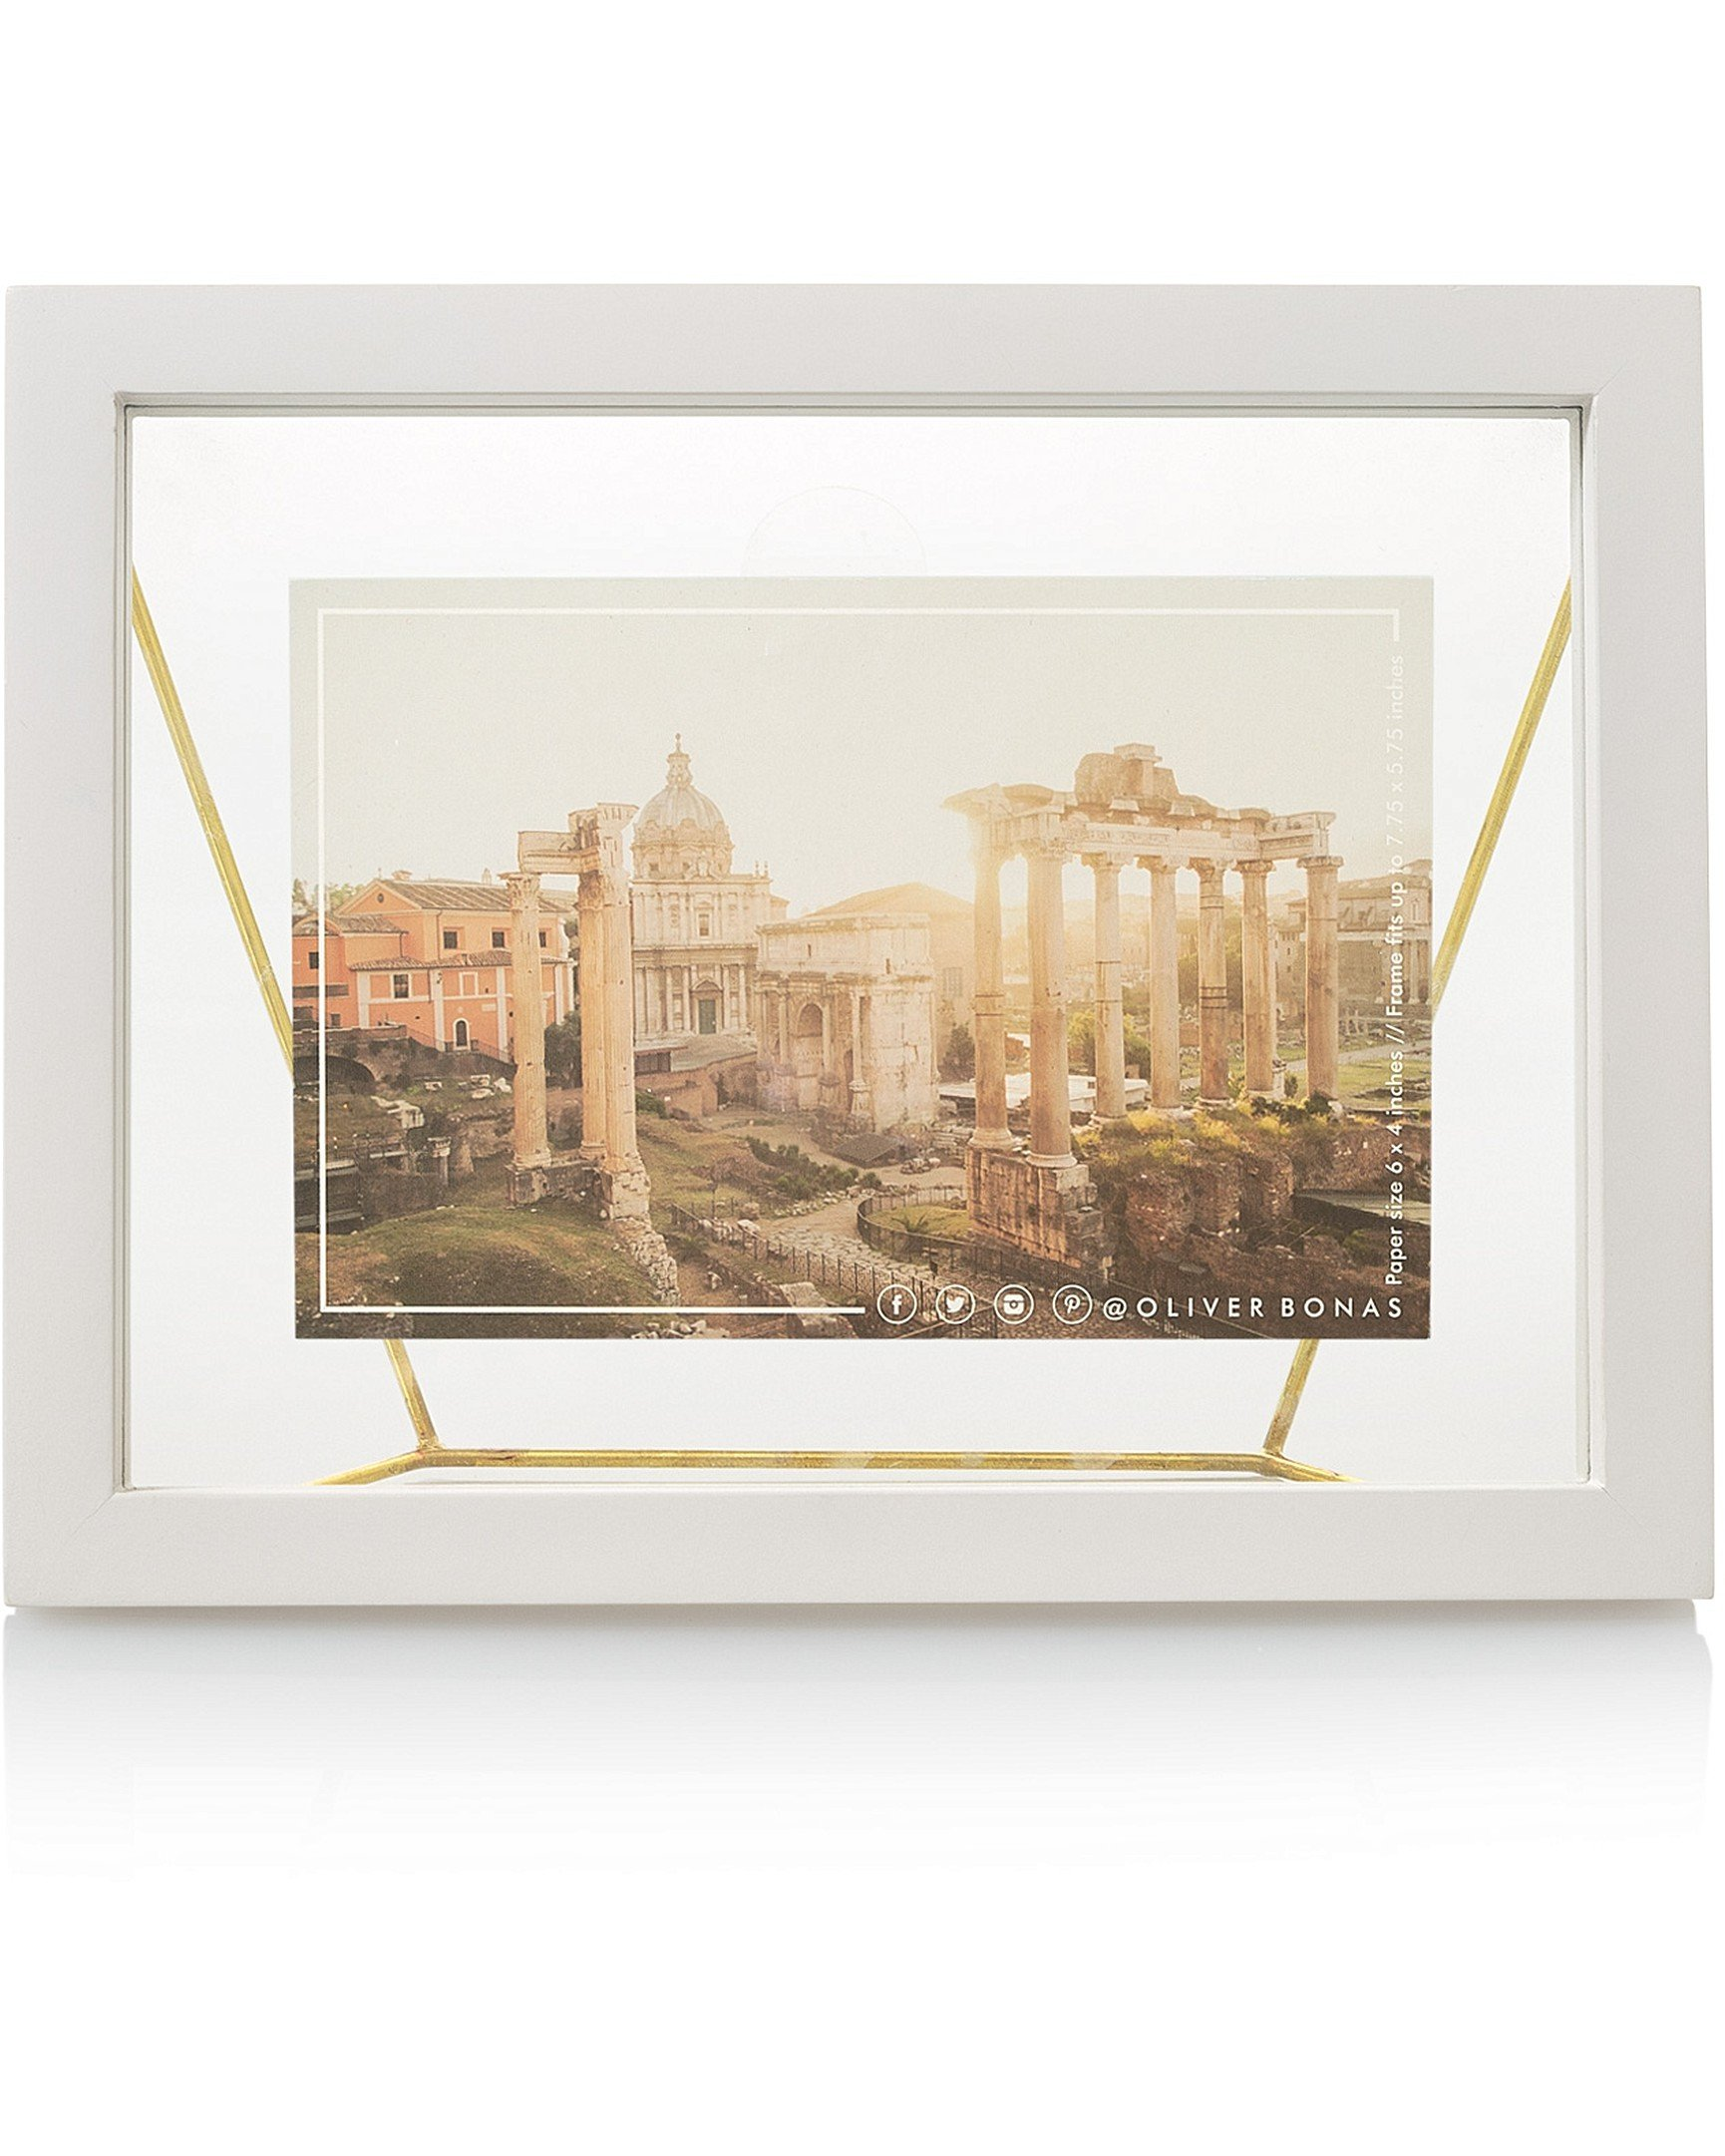 Photo Frames - Multi Photo Frames & Standing Frames | Oliver Bonas